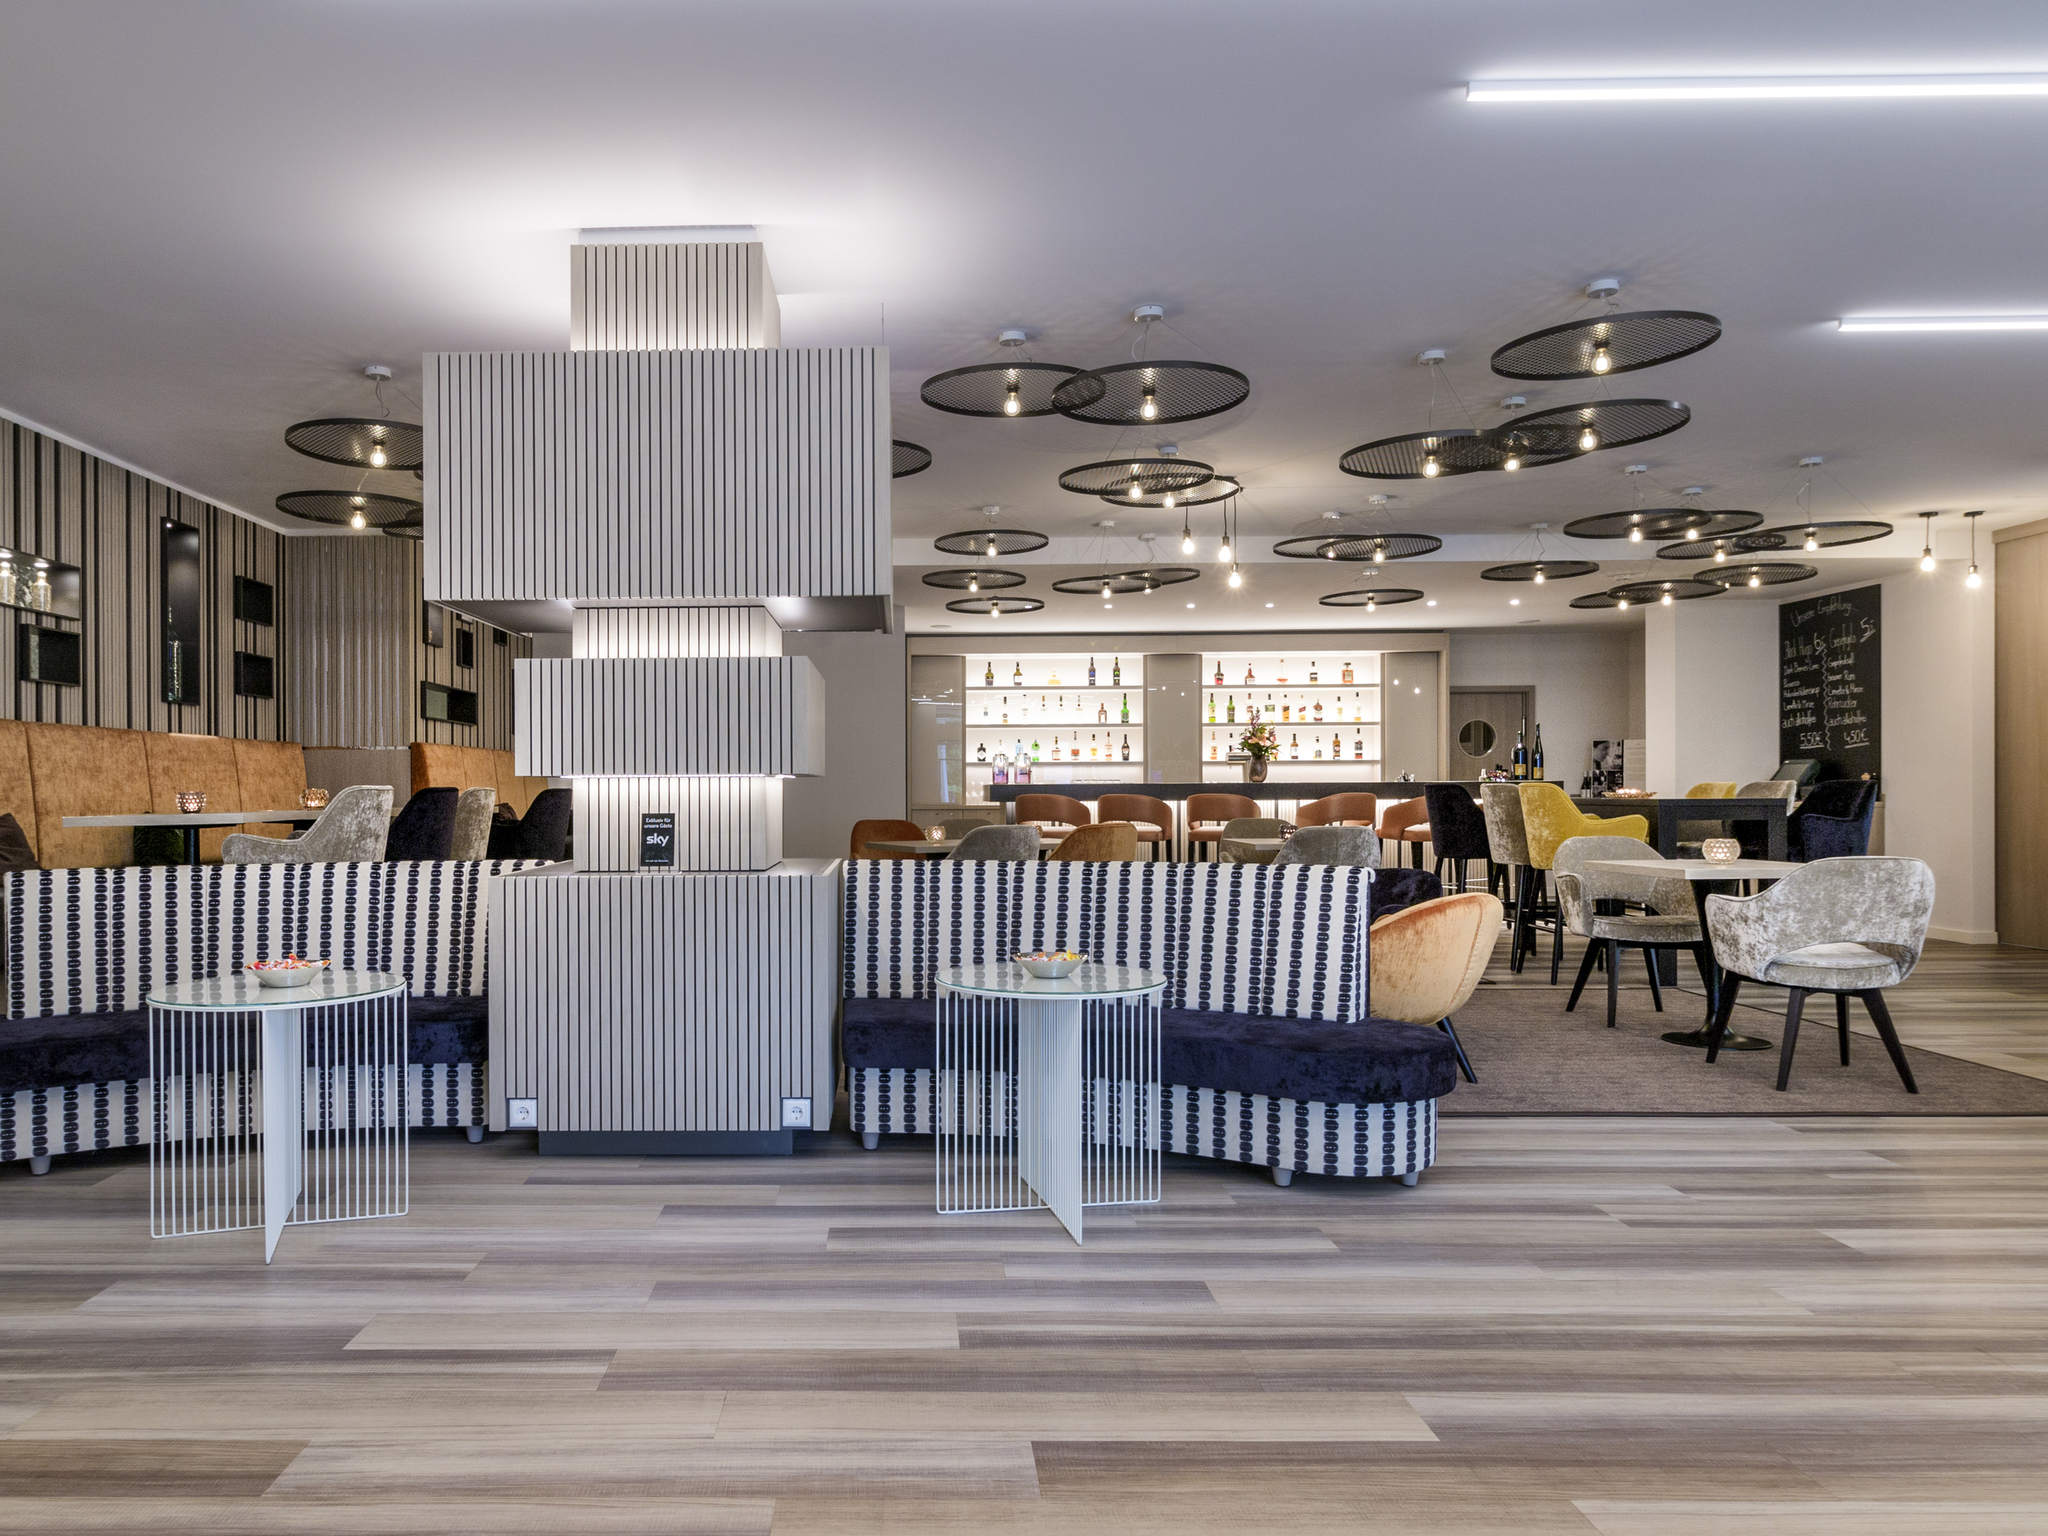 Hotel - Mercure Hotel Hannover Oldenburger Allee